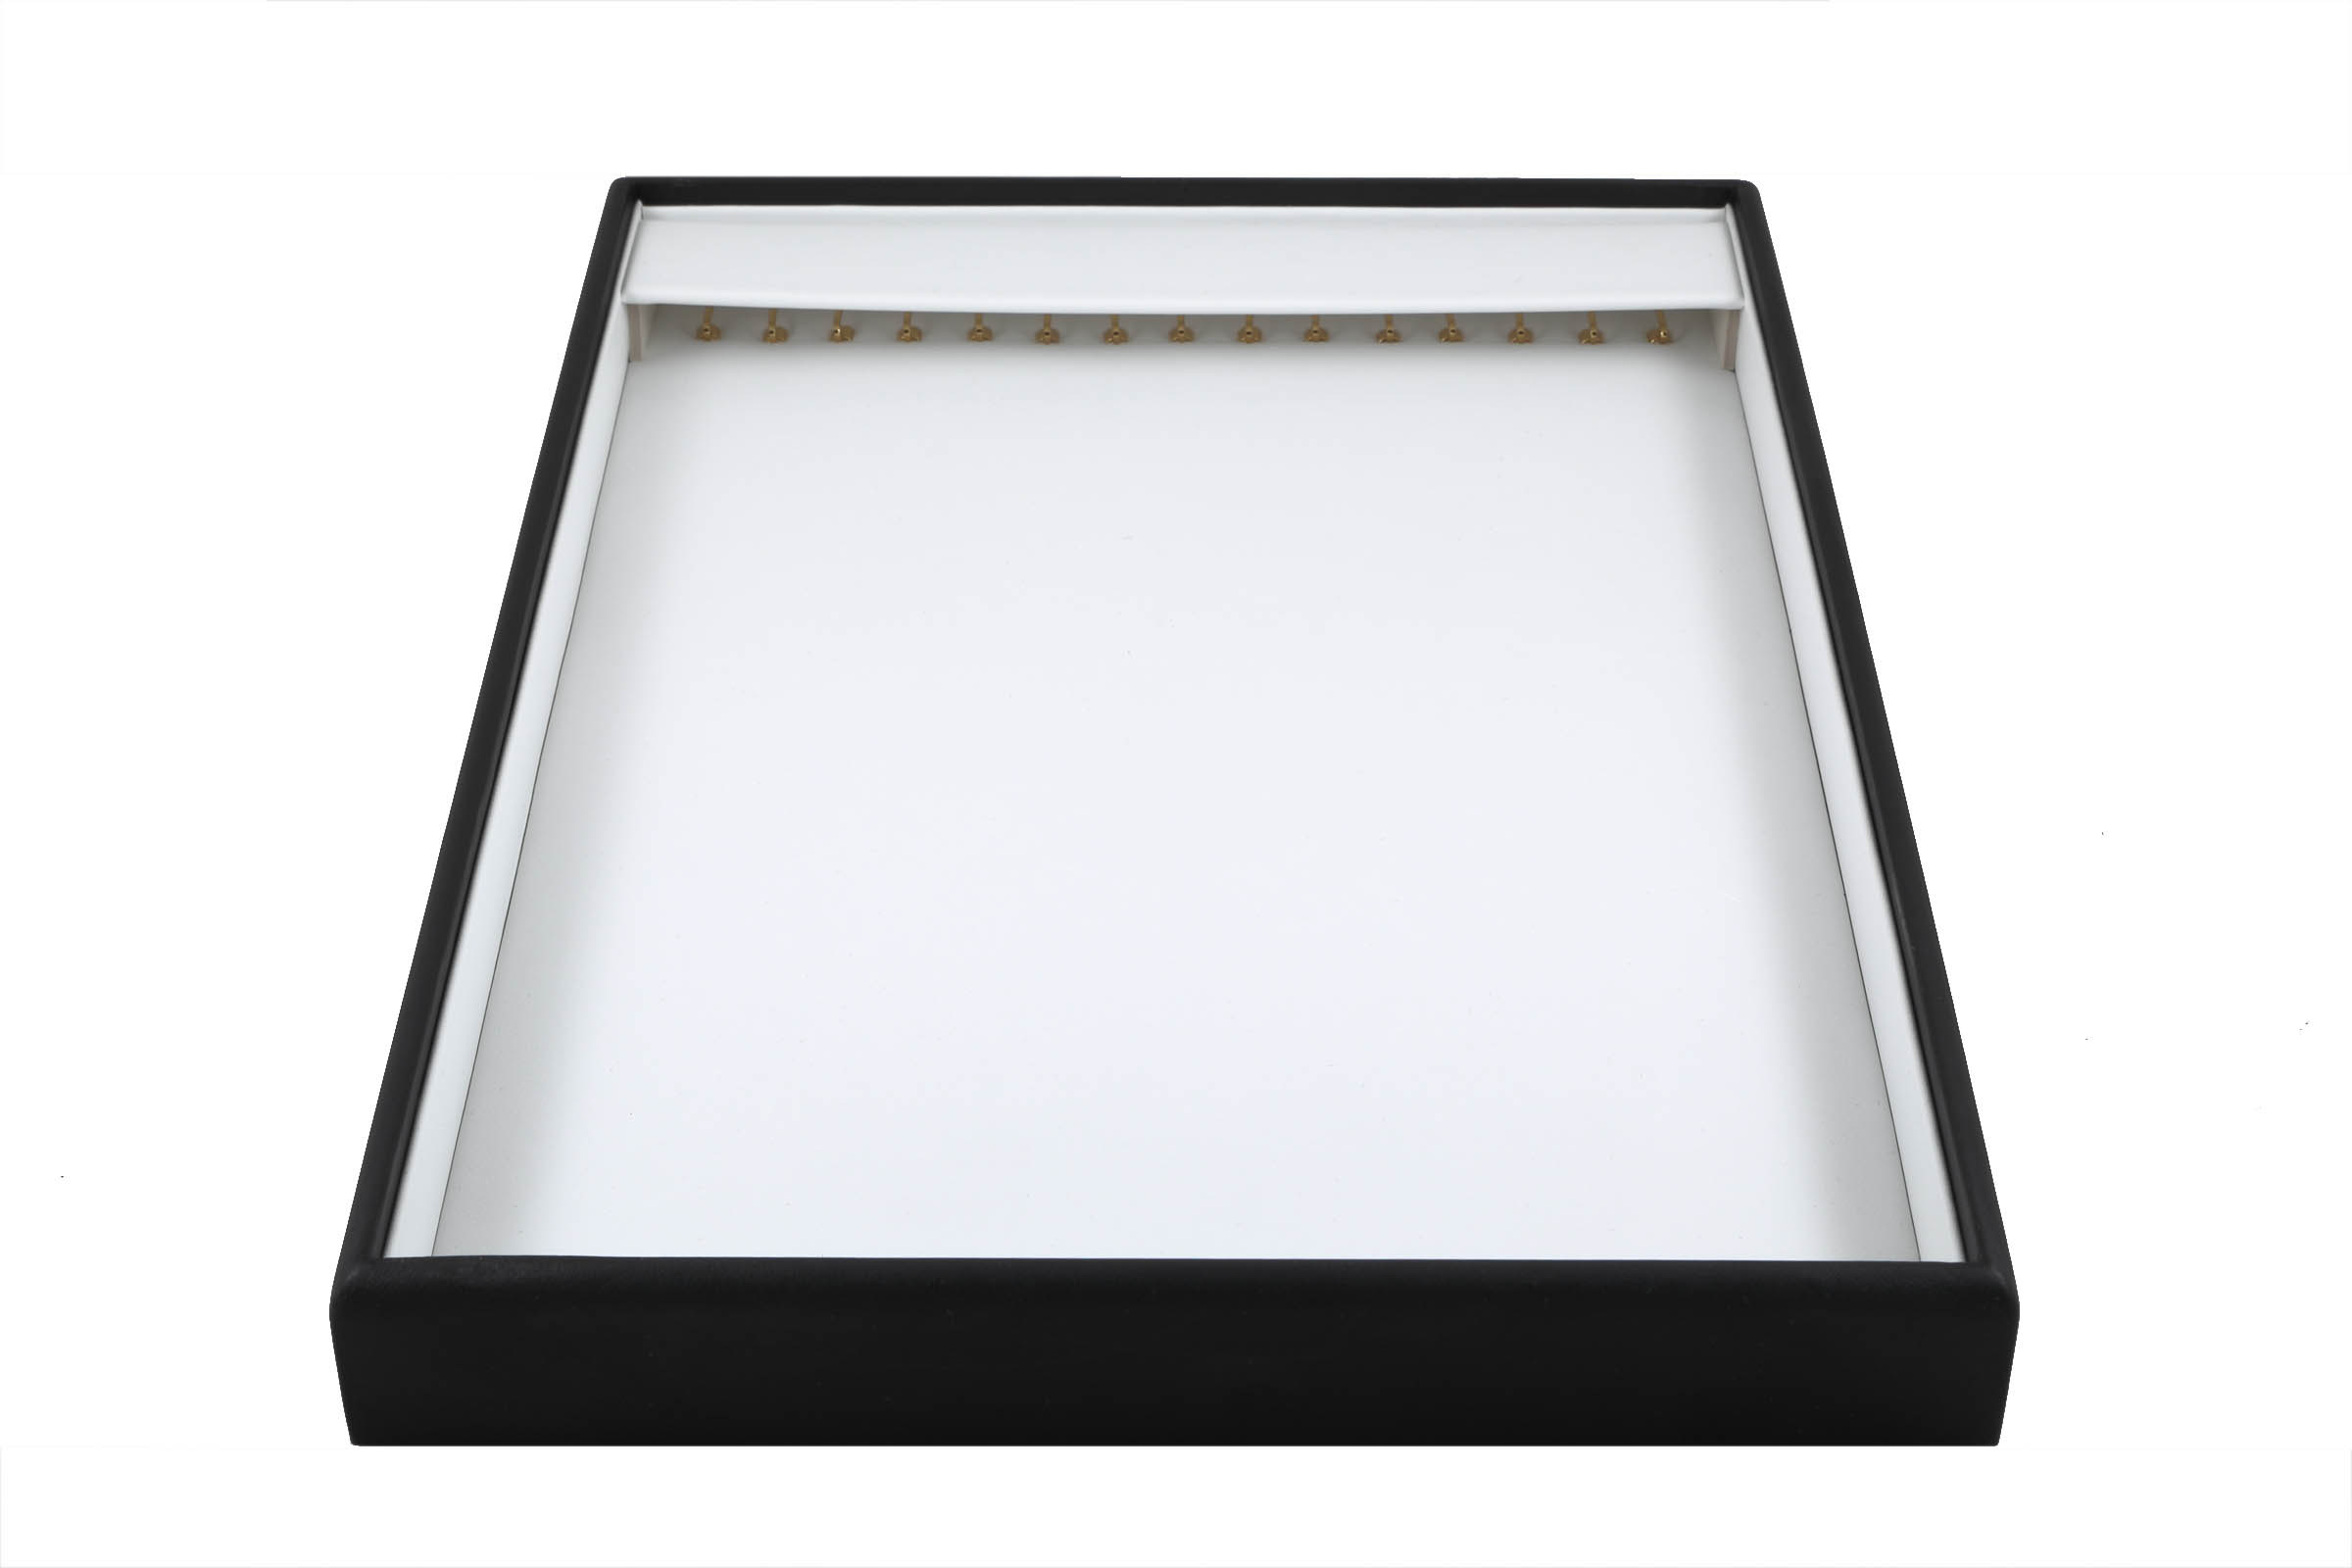 1 x Black and White Premium Soft Padded Leatherette Necklace or Bracelet Display Tray. Stackable. Dim 315(w) x 225(d) x 30mm(h).